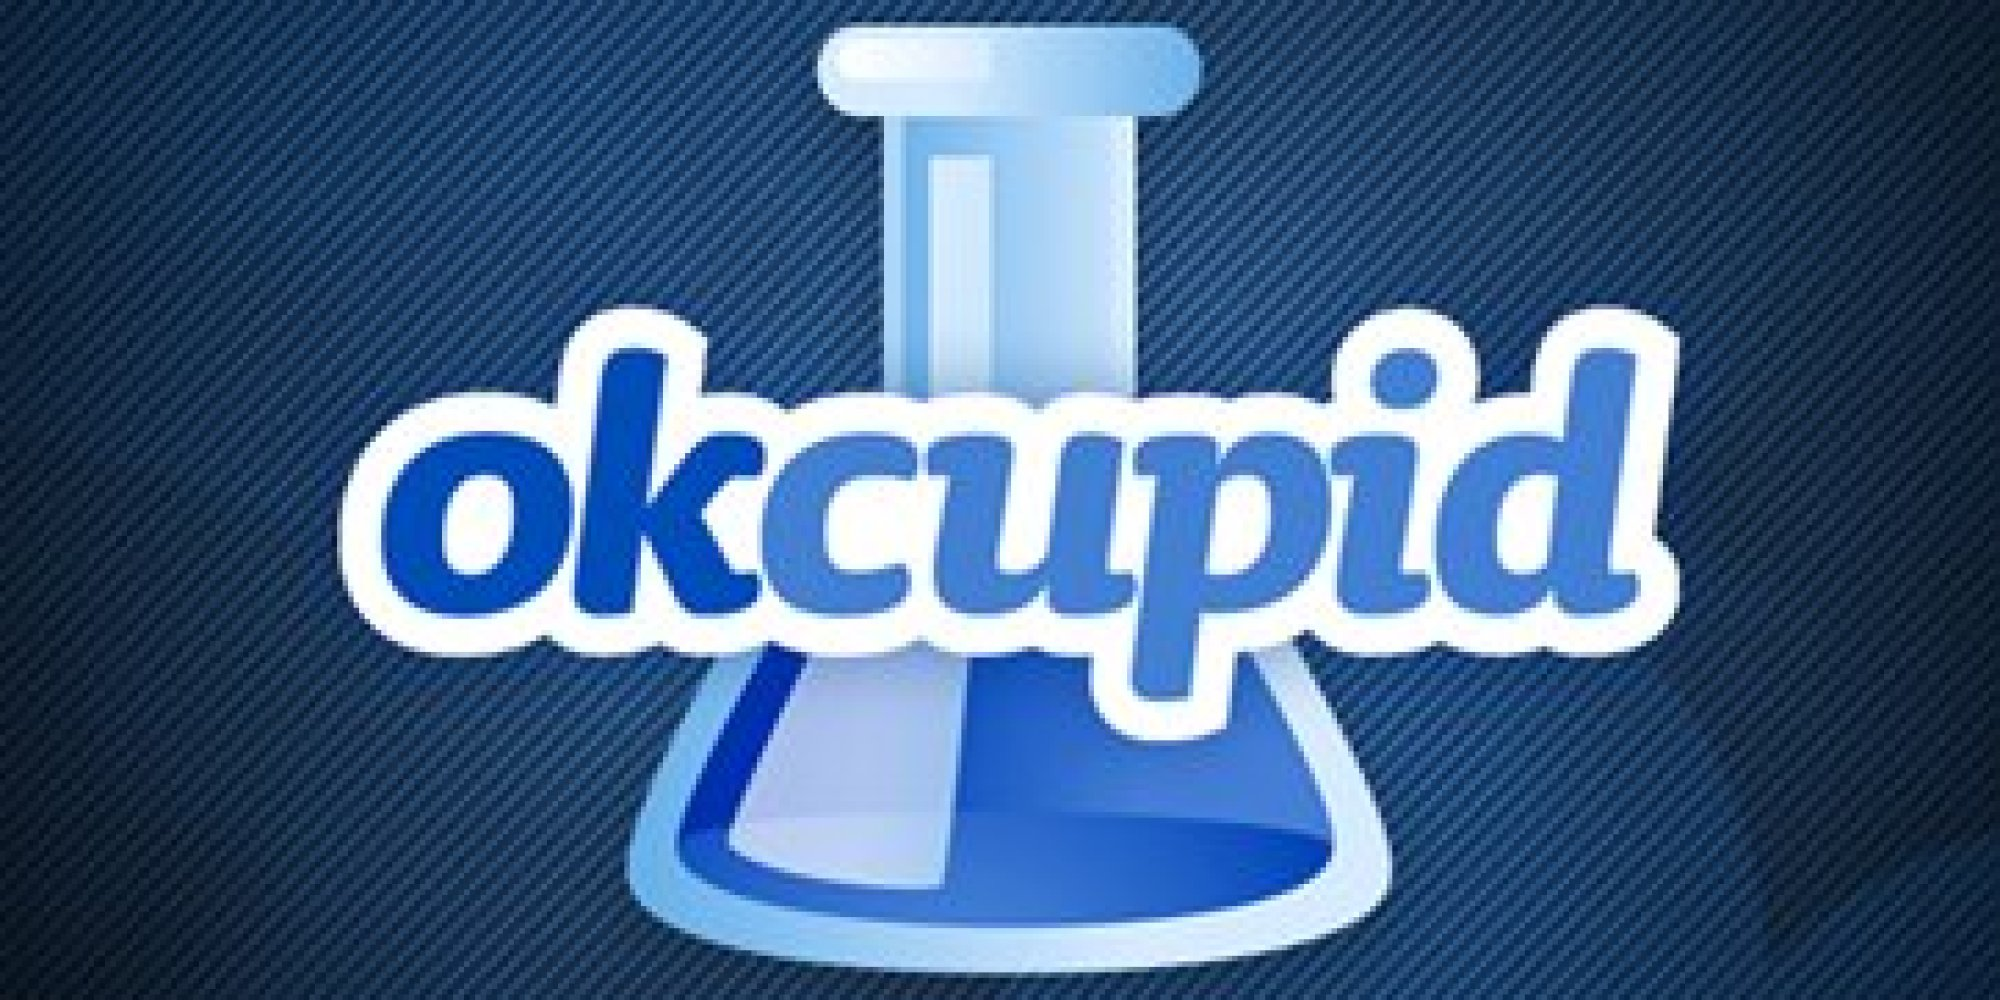 okay cupid Okcupid ‏ verified account @okcupid 17 aug 2017 follow follow @ okcupid following following @ okcupid unfollow unfollow @ okcupid blocked blocked @ okcupid unblock unblock @ okcupid pending pending follow request from @ okcupid cancel cancel your follow request to @ okcupid.